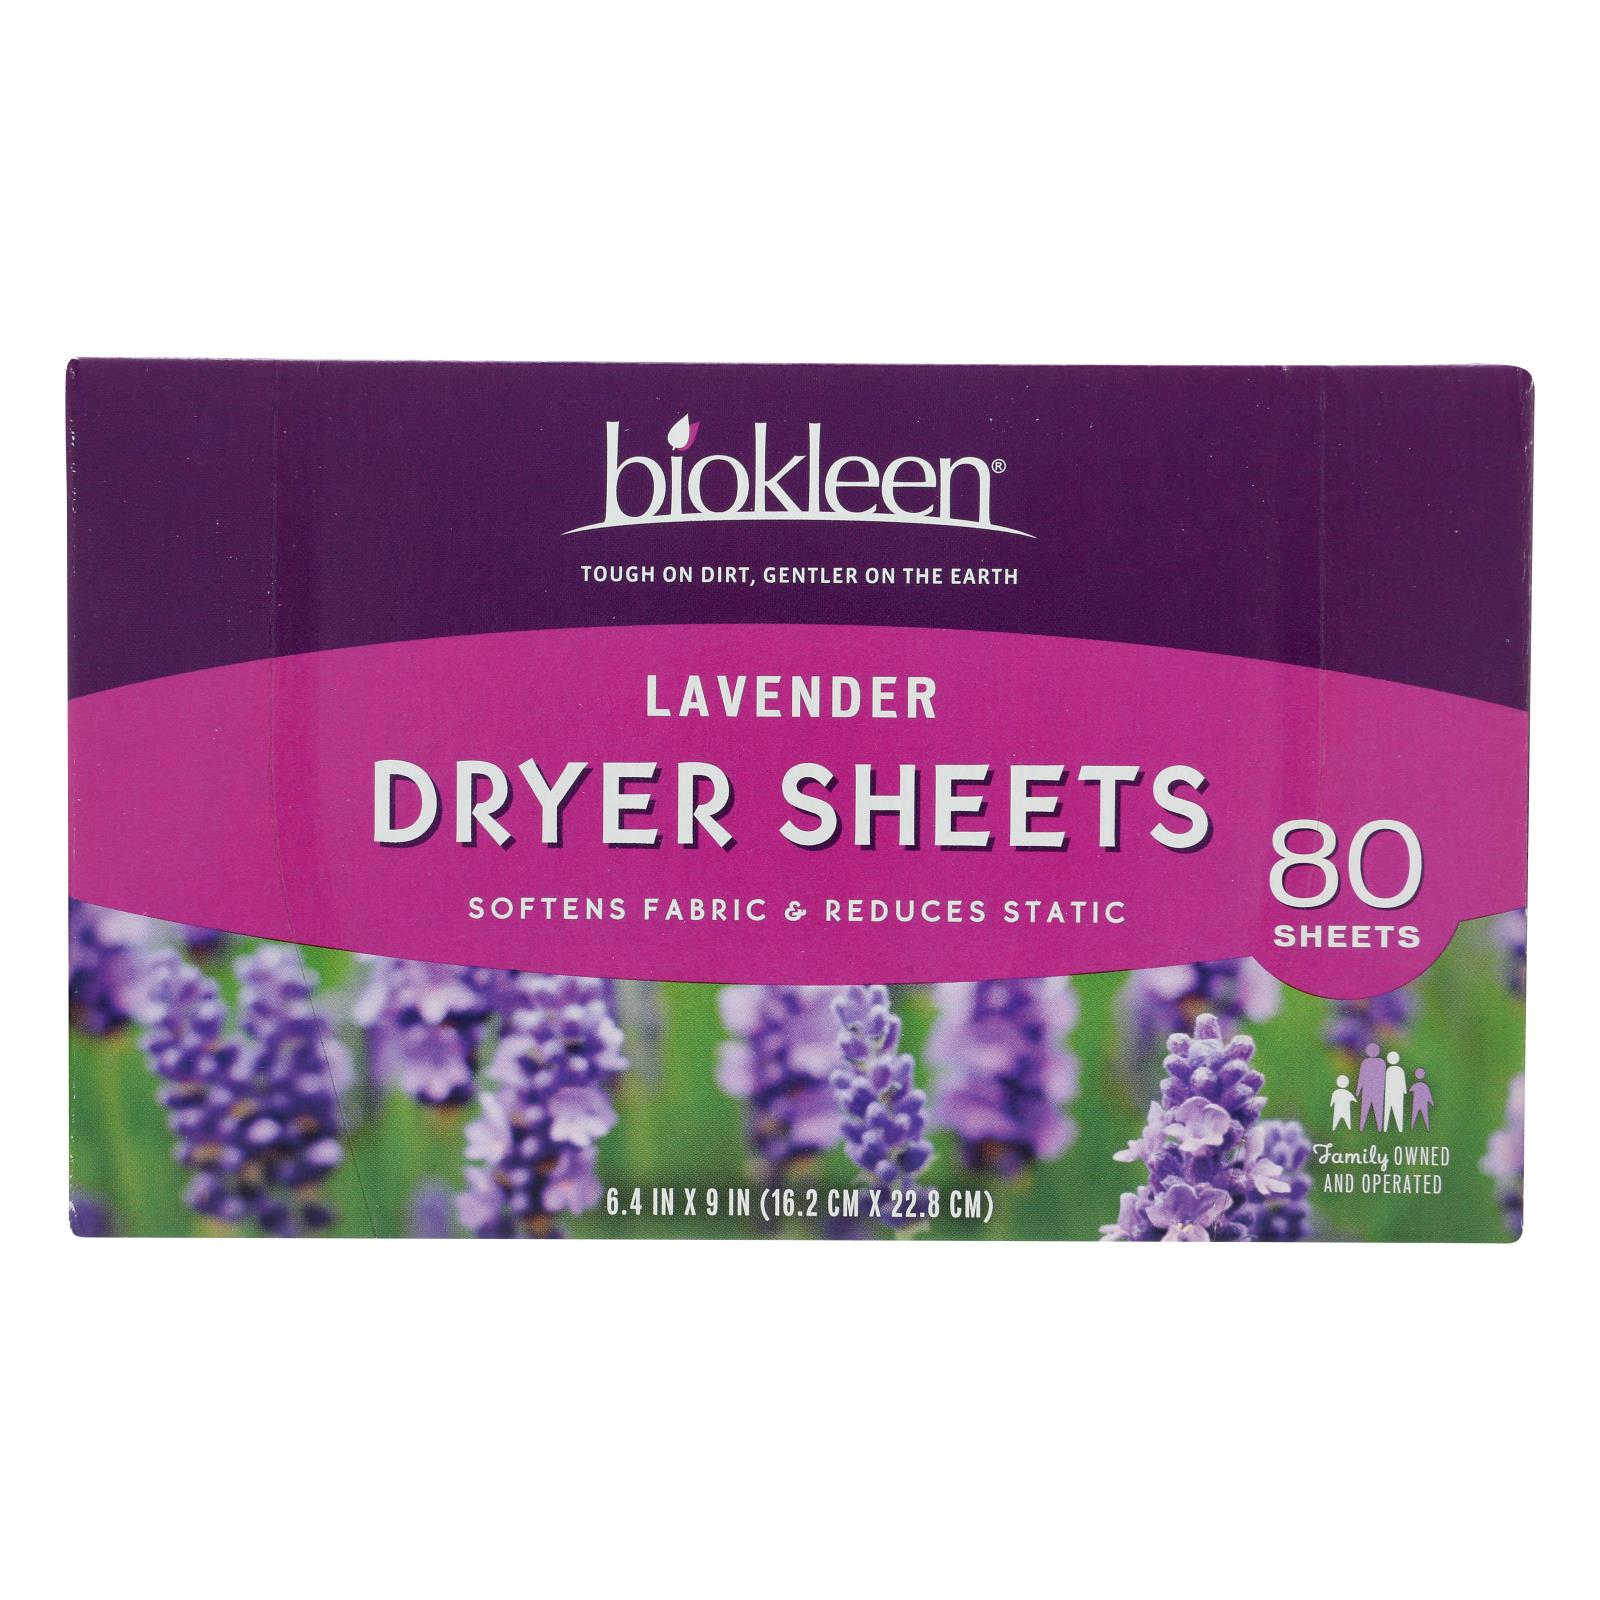 Biokleen - Dryer Sheets Lavender - Case of 6 - 80 CT